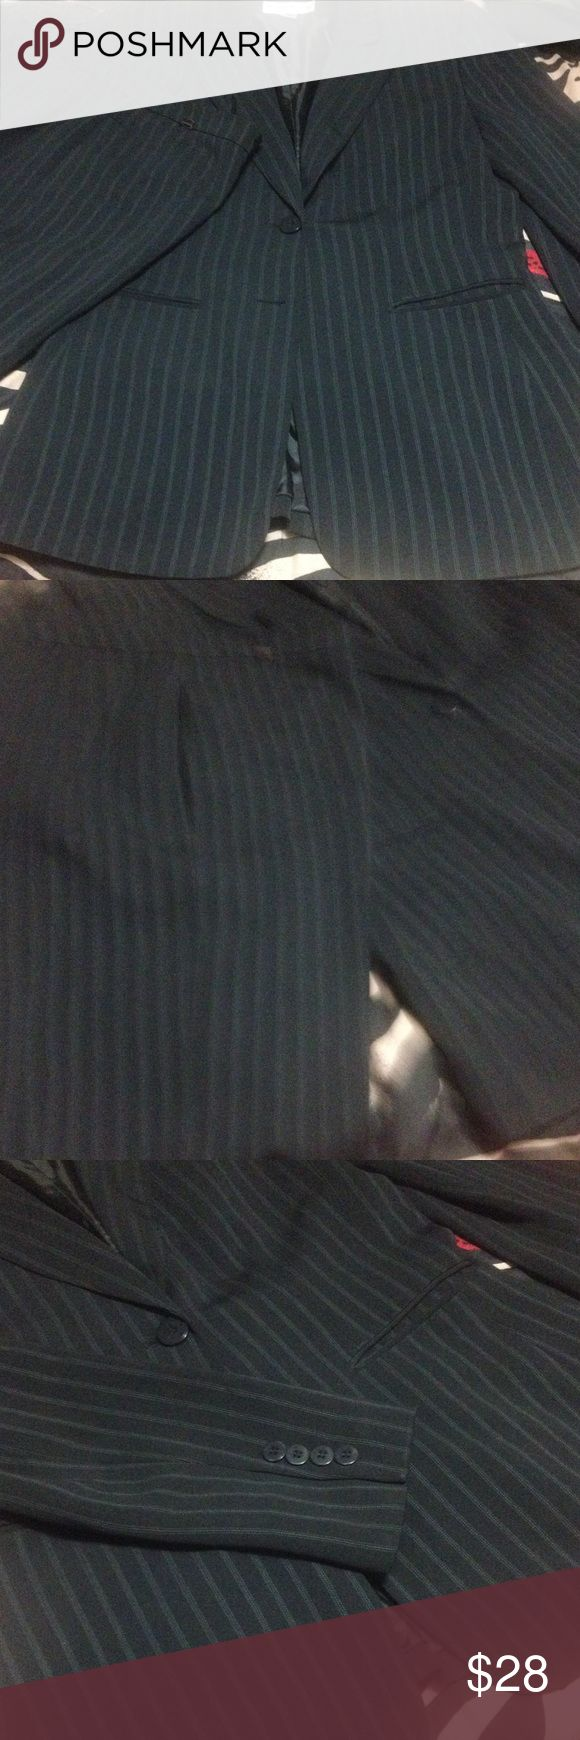 John Meyer of Norwich pant suit sz 6 This is a very nice navy pinstriped suit sz 6 in gentle lived condition. Pants and jacket are both fully lined. The shell is polyester, lining is acetate and nylon. Pants have hidden 2 button front across the top and zip front. One button missing off front of suit. Price has been adjusted to reflect that. I have other suits listed. Other